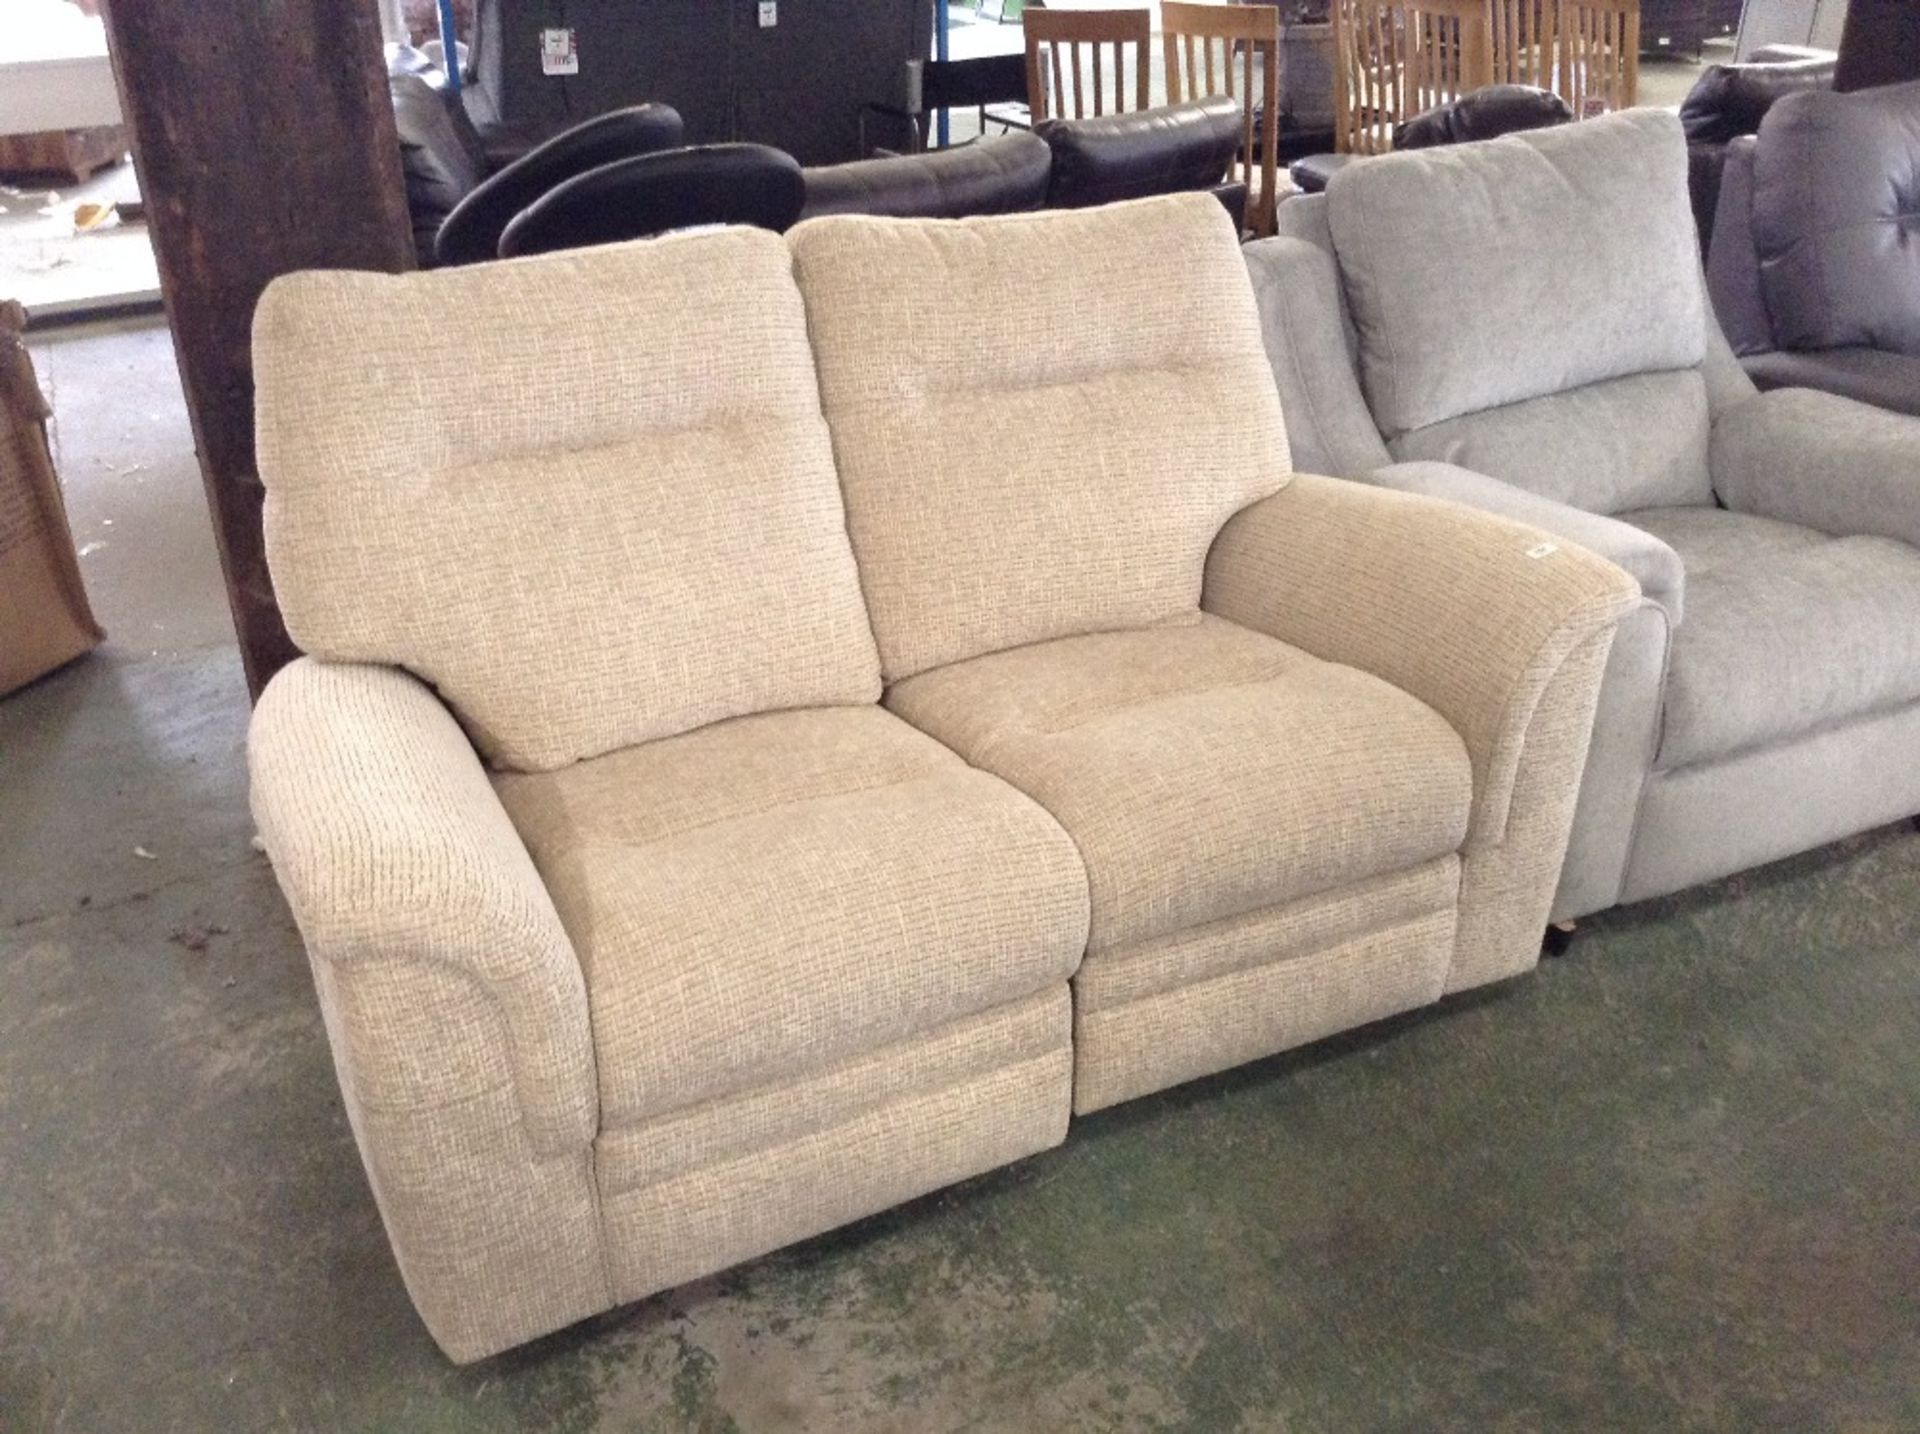 Lotto 154 - BISCUIT HIGH BACK ELECTRIC RECLINING 2 SEATER SOFA